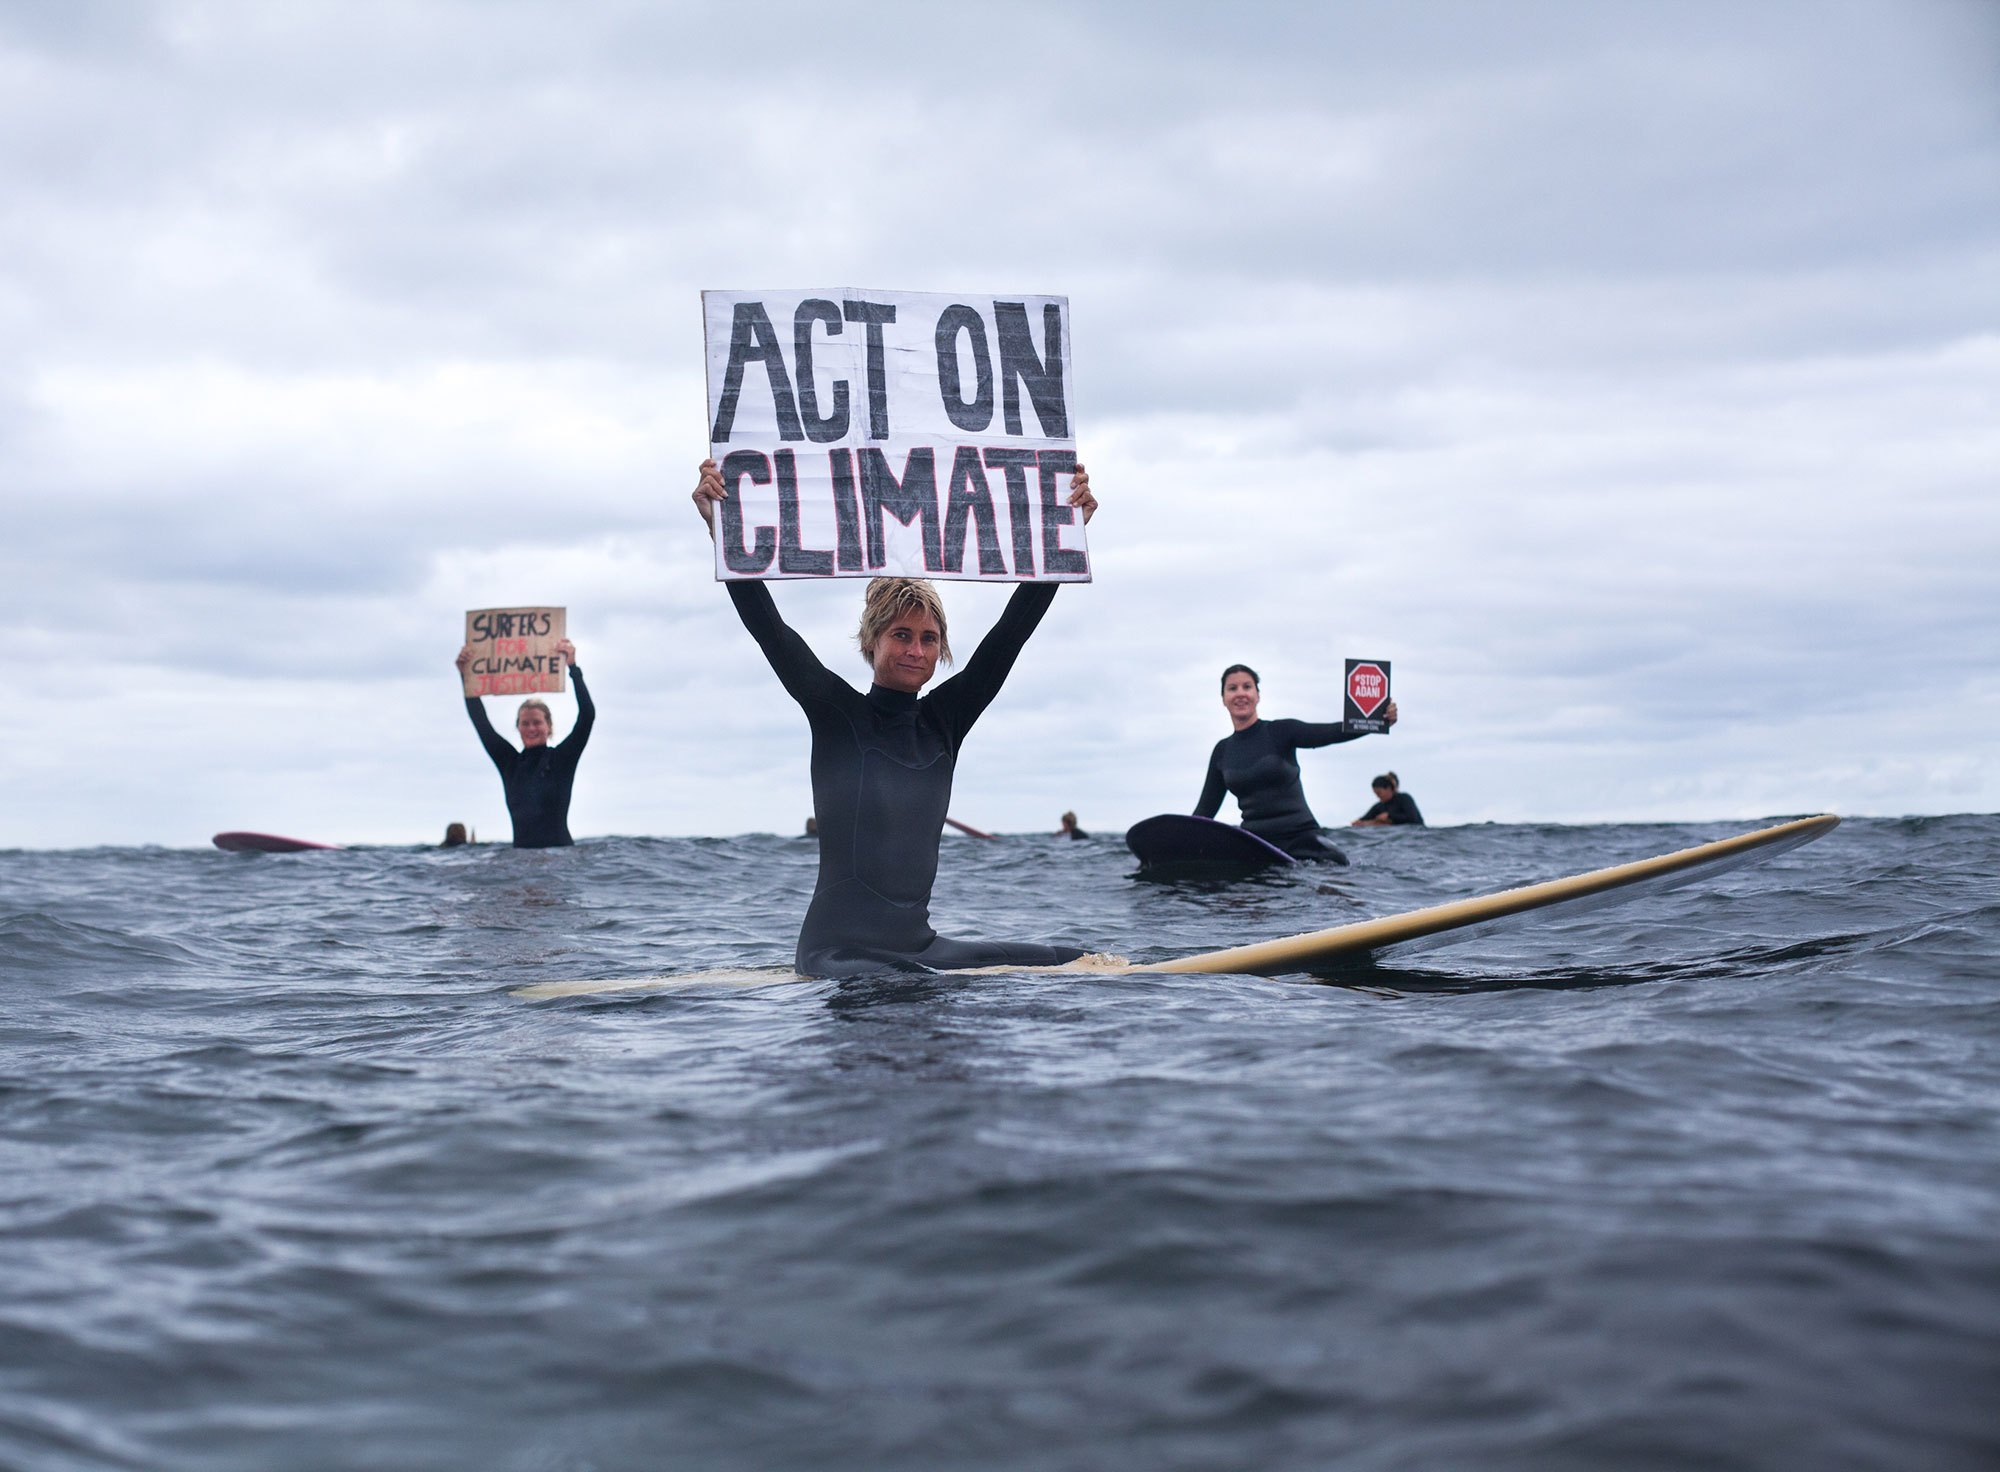 Surfers with an Act on Climate sign